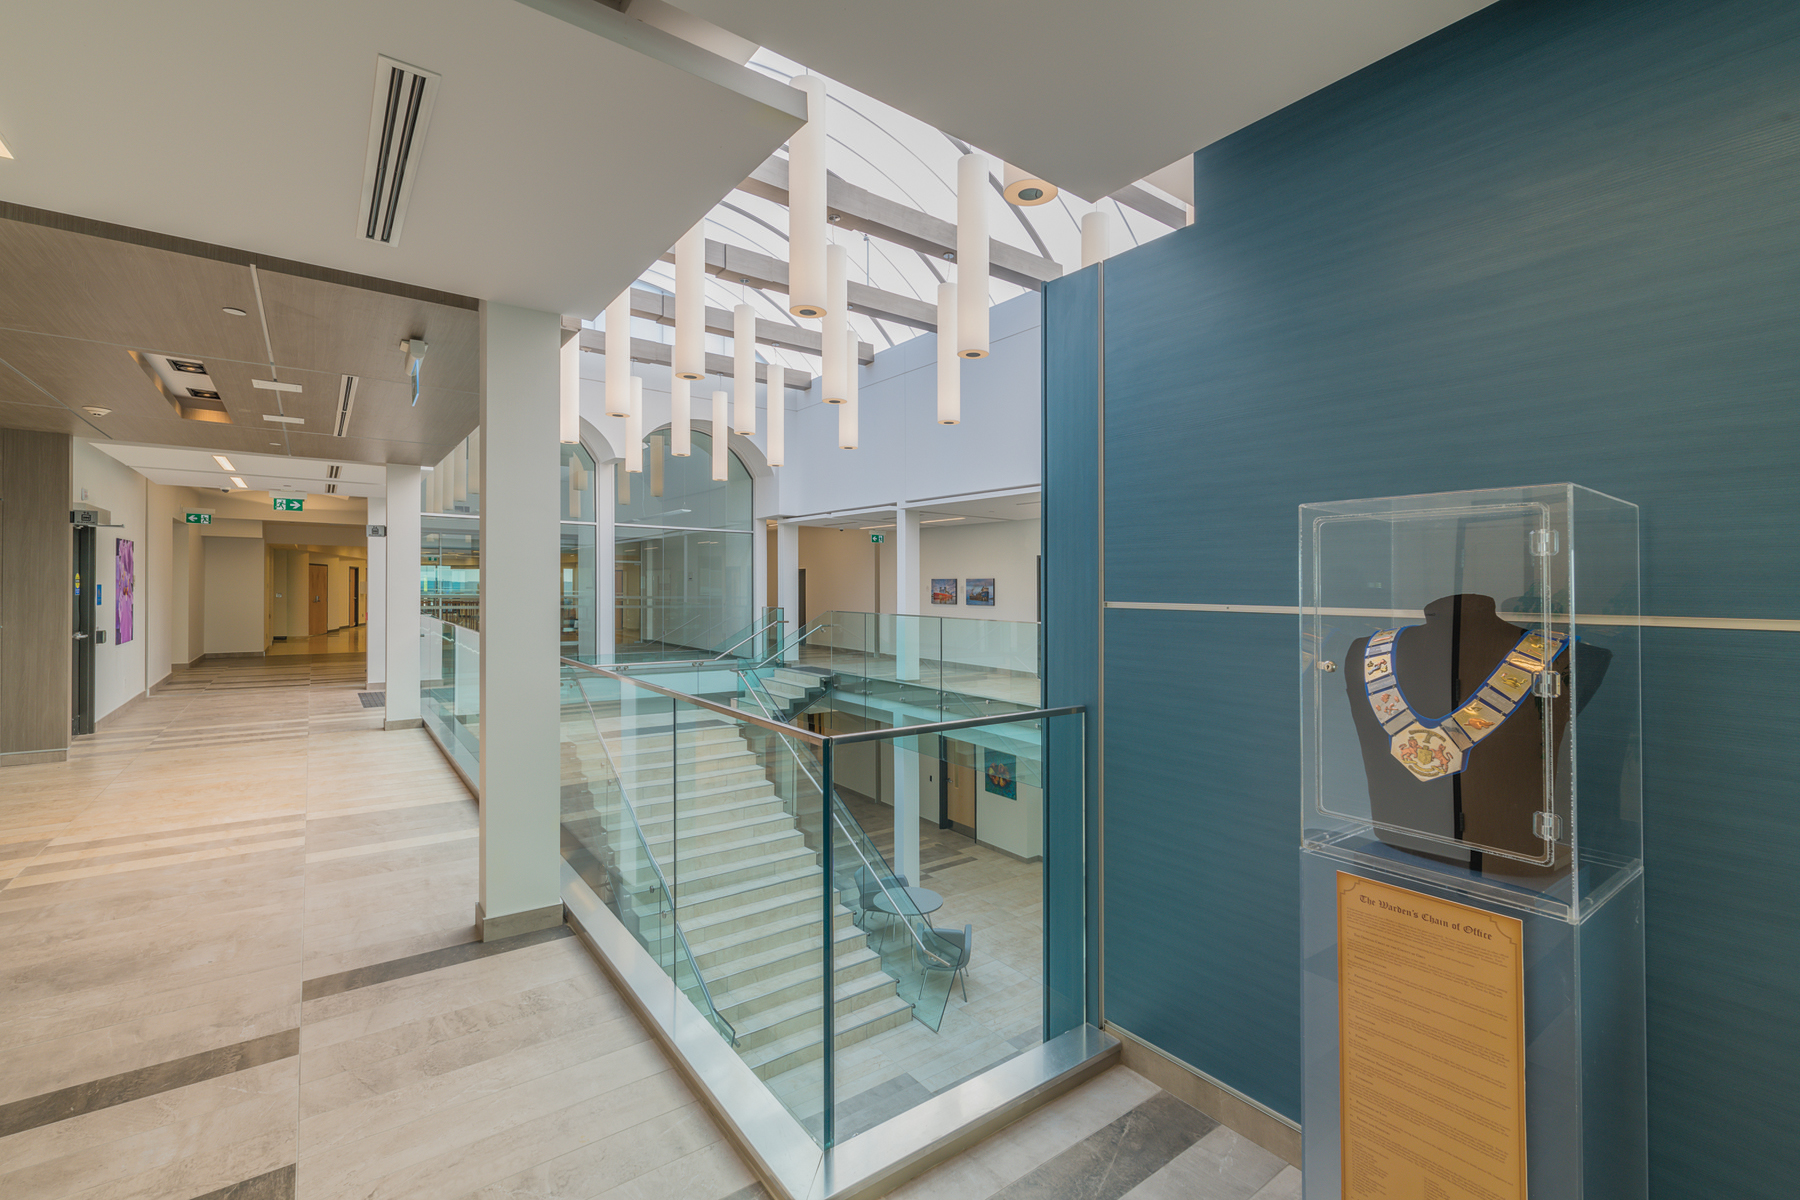 Second storey corridor with views of open staircase with skylights and white pendant lighting leading to ground floor level